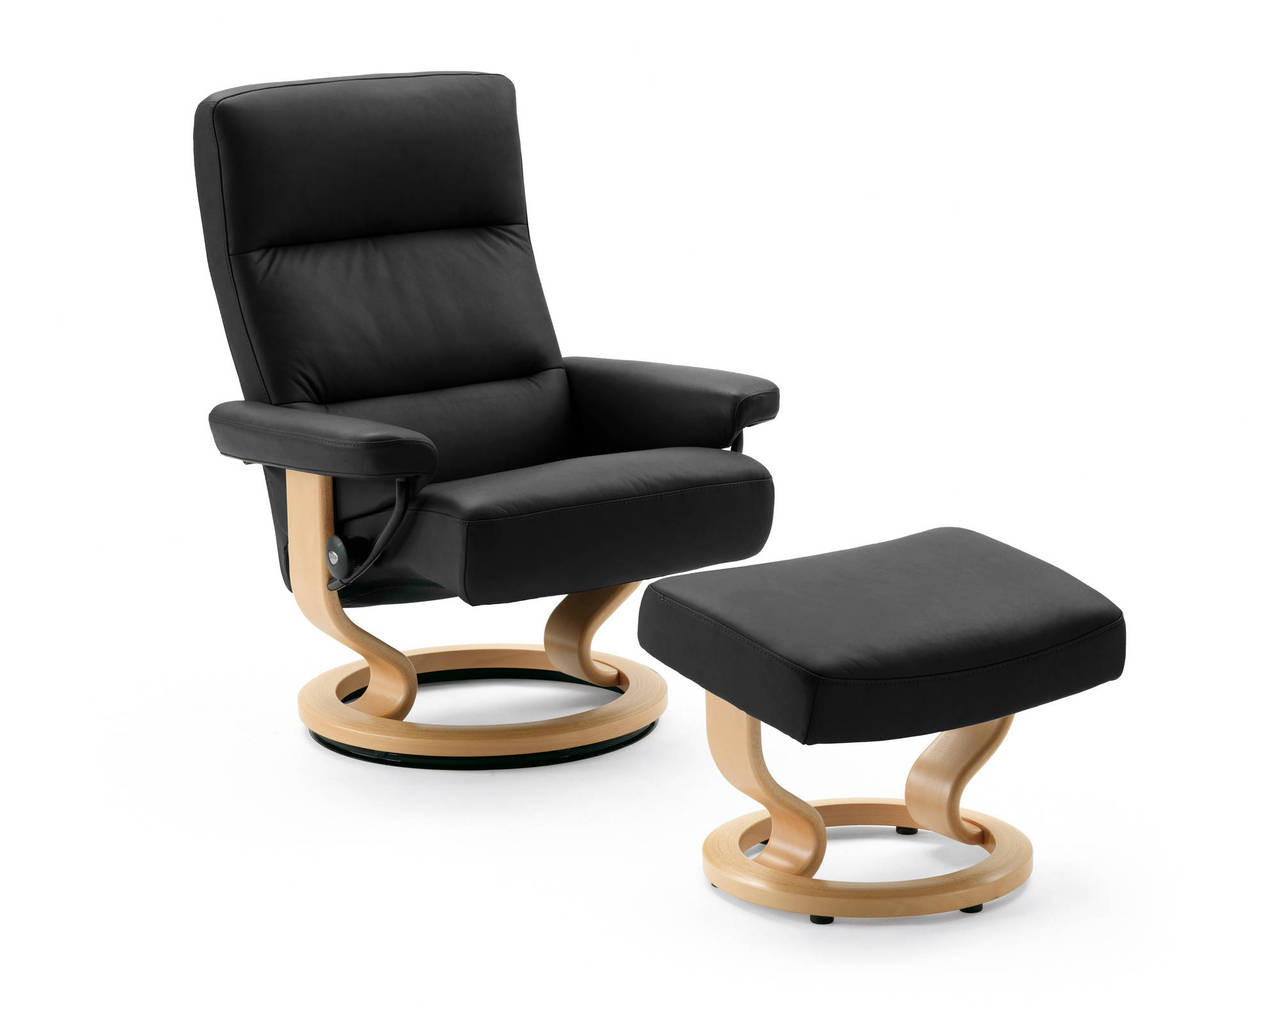 Stressless Kino Ekornes Stressless Atlantic Recliners Chairs Fast Delivery